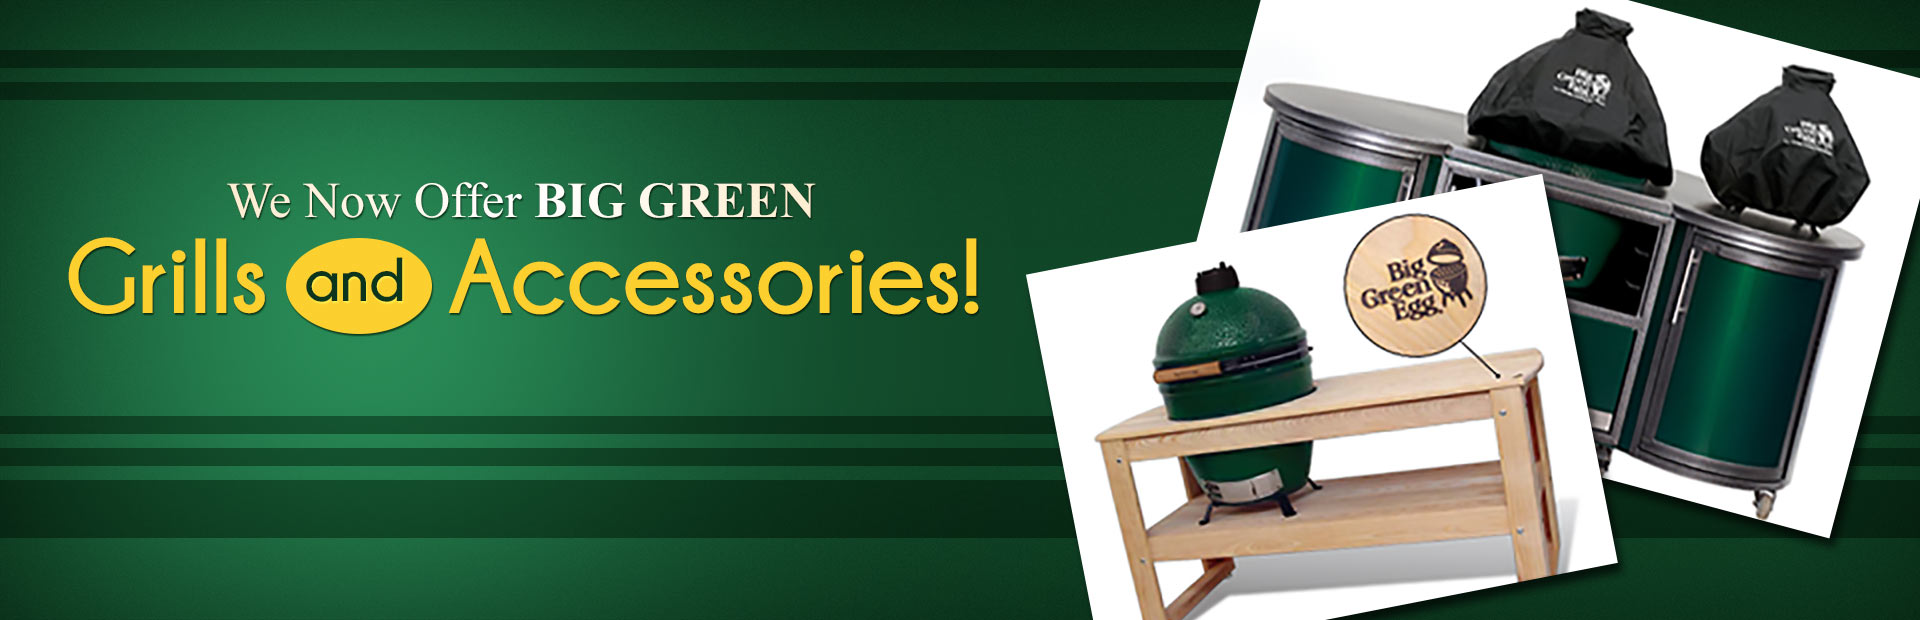 Big Green Egg grills are now available! Contact us for details.